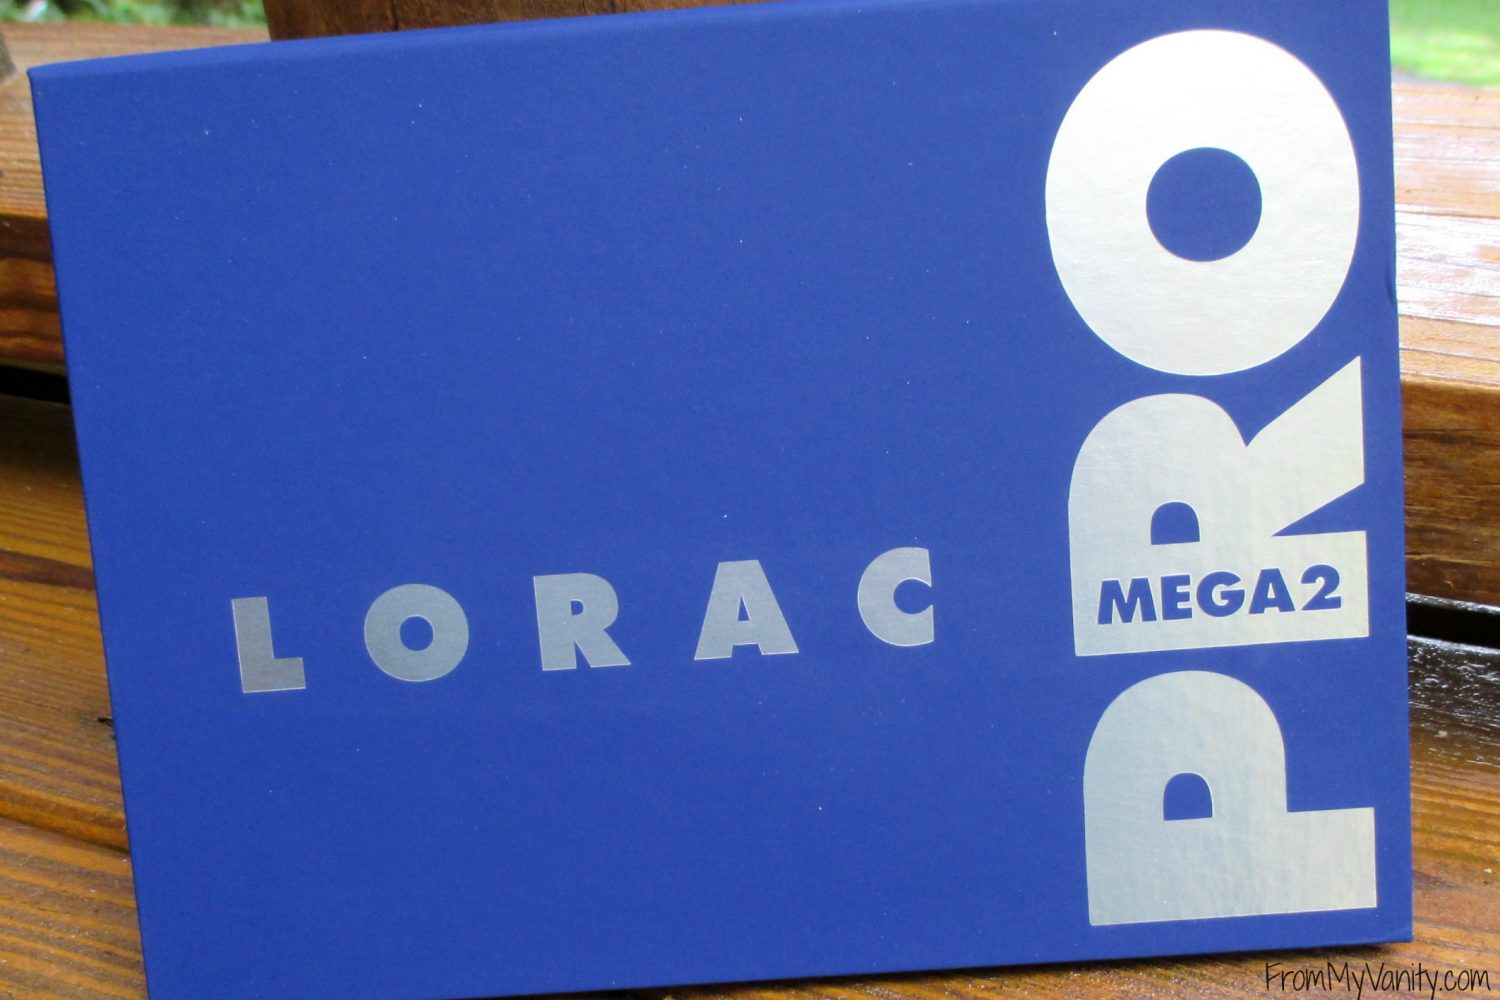 LORAC Mega Pro 2 Eyeshadow Palette // Review, Swatches, & Eye Looks // Closed Palette // #LORACCosmetics #MegaPro2 FromMyVanity.com